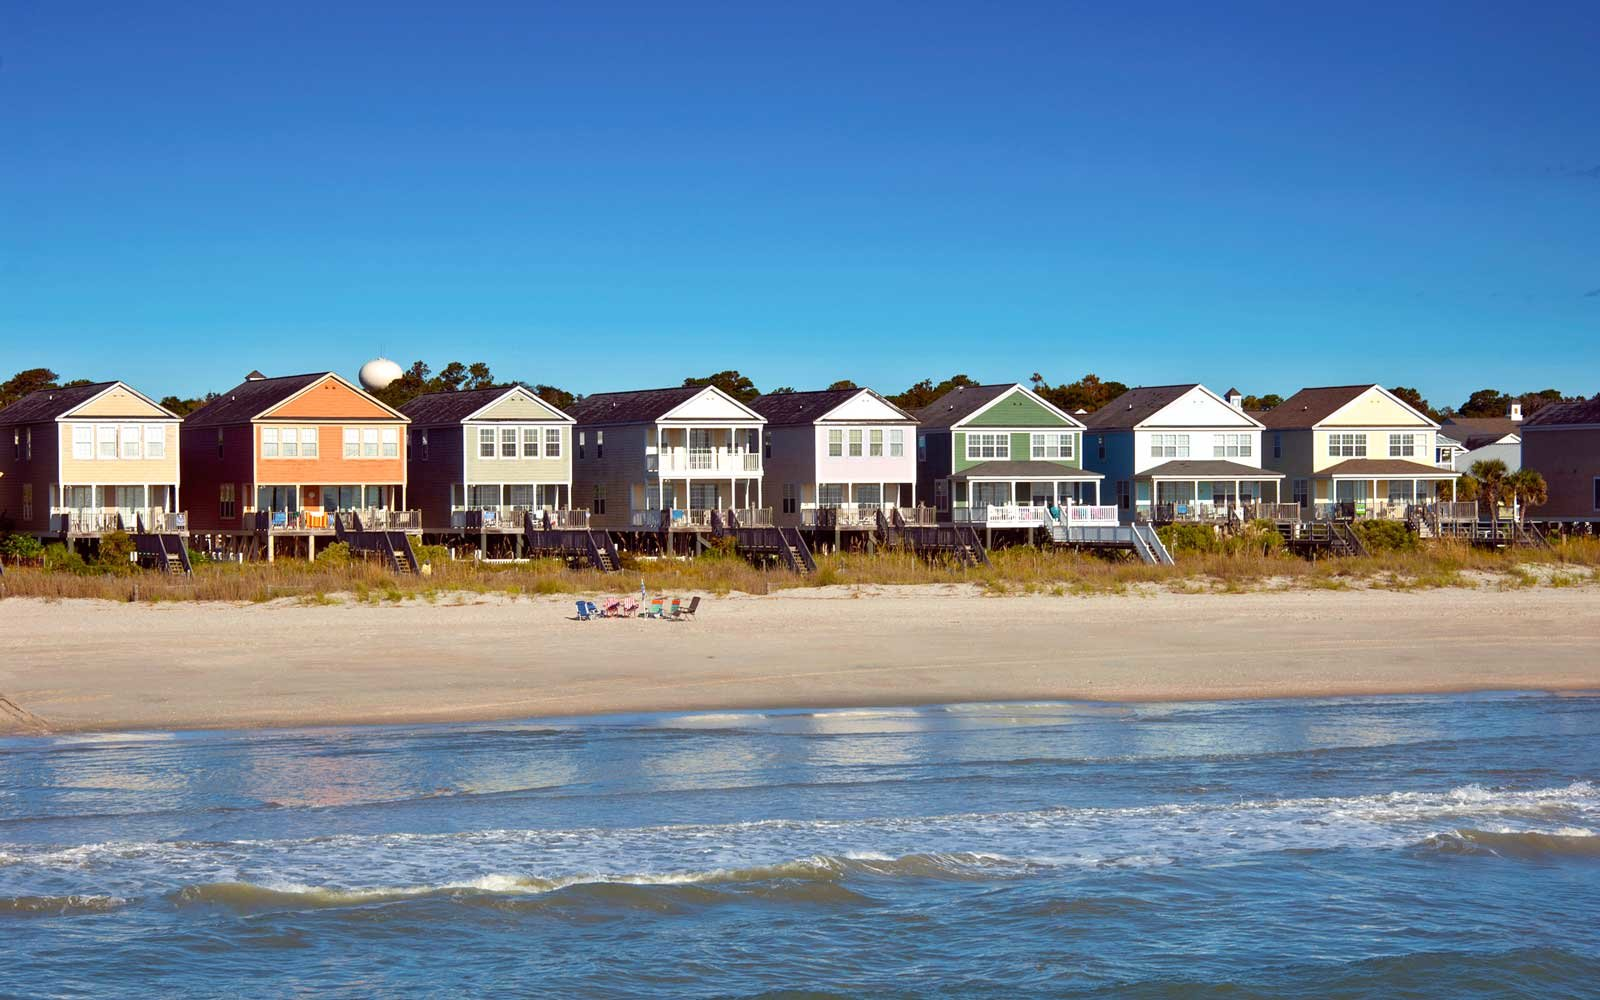 Houses at Surfside Beach, South Carolina